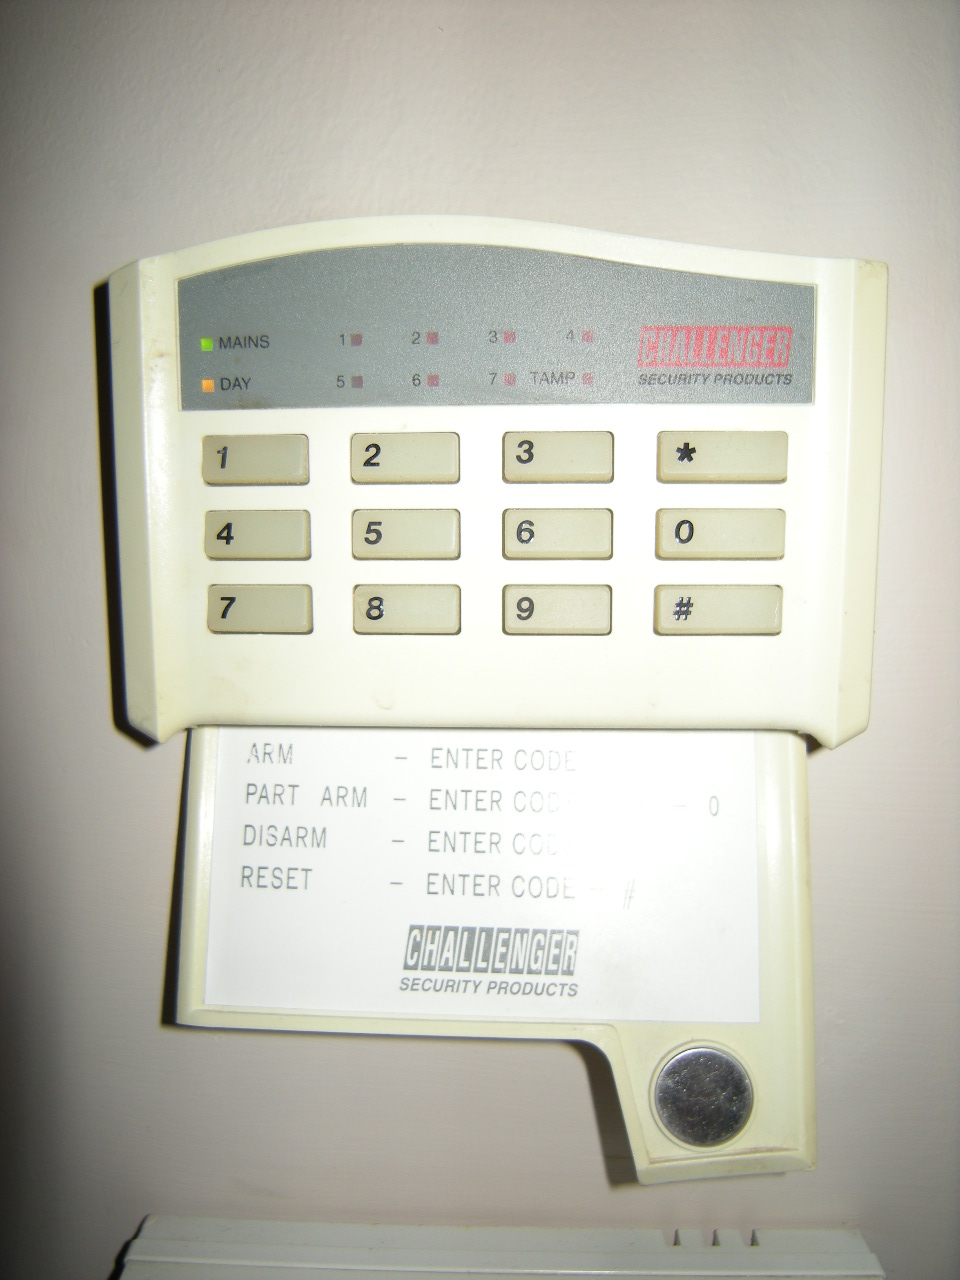 Wiring Diagram For Alarm Keypad : Can i replace remote keypad challanger alarm system